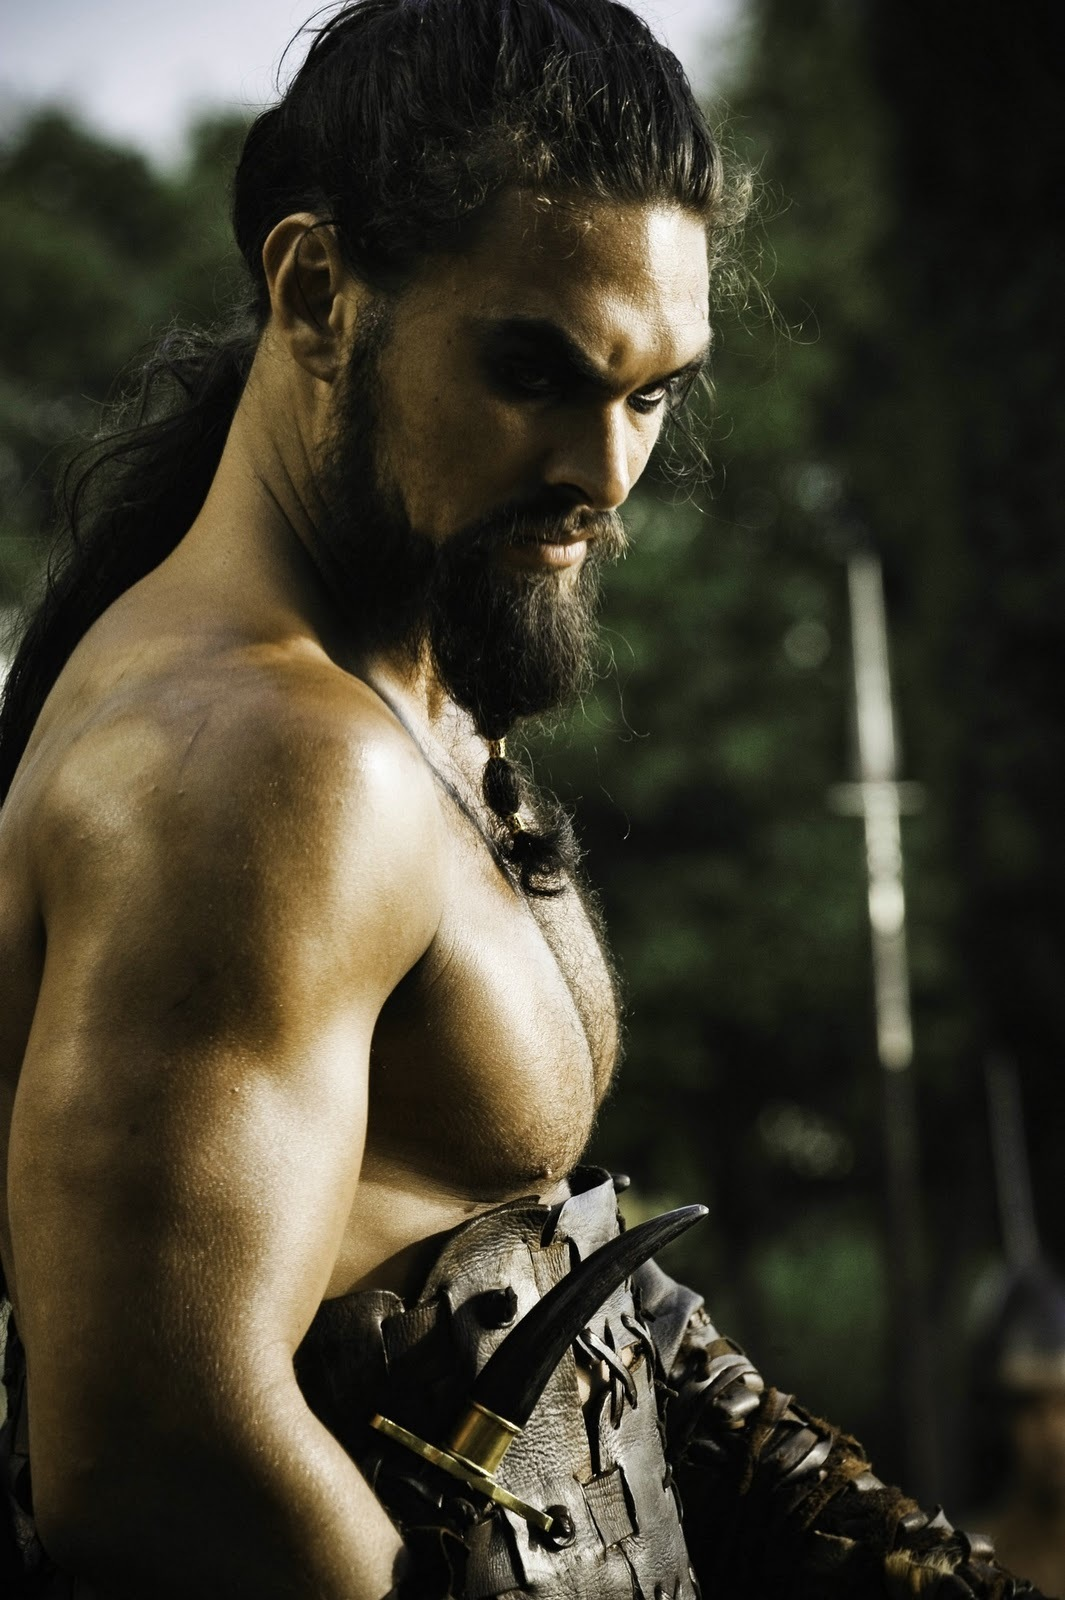 https://images4.fanpop.com/image/photos/20700000/Khal-Drogo-game-of-thrones-20742562-1065-1600.jpg